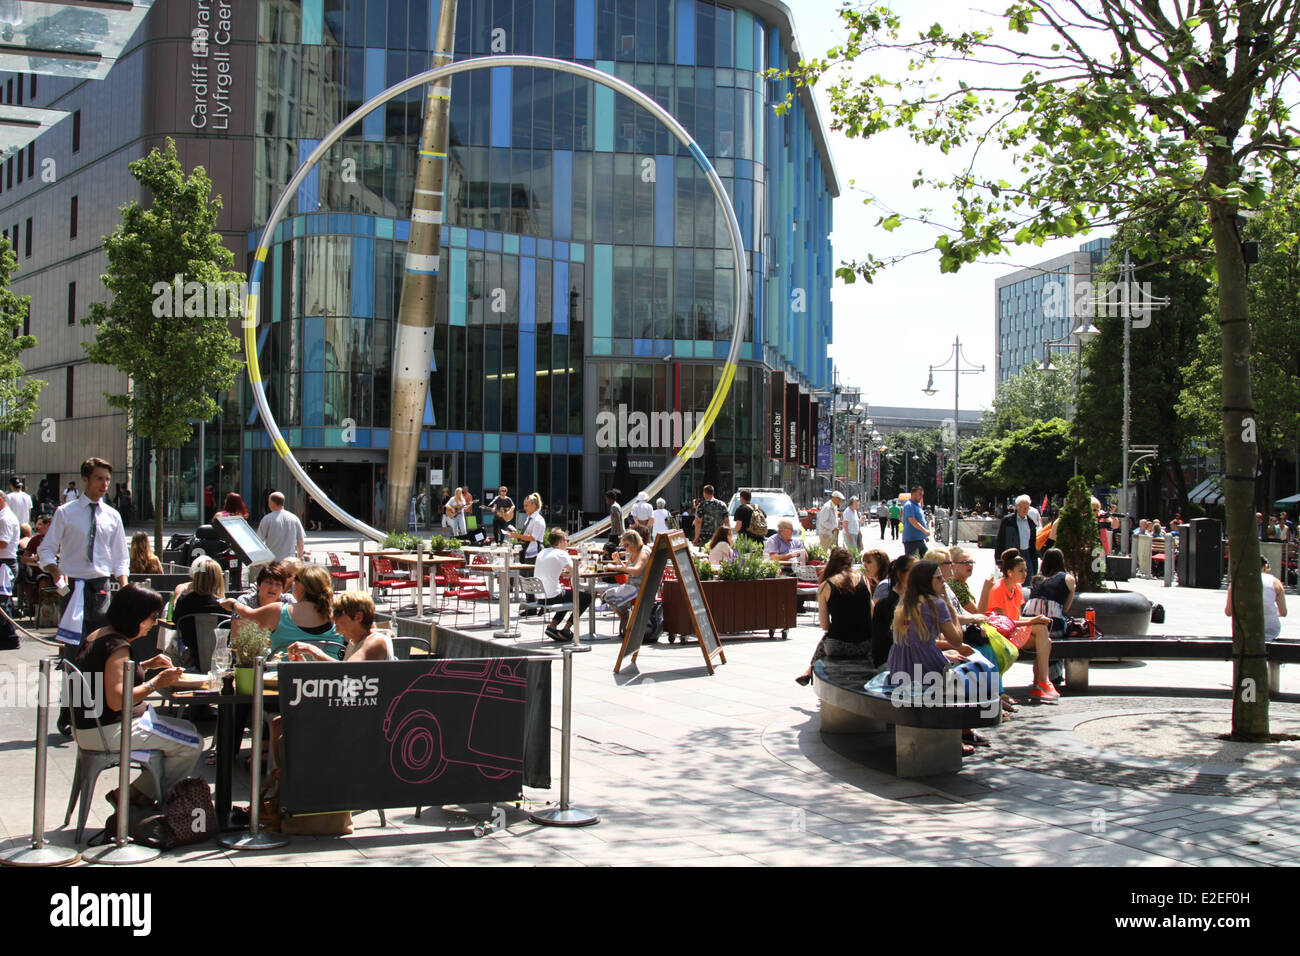 People enjoying the sunshine in Cardiff city centre, during the hot weather in June, South Wales UK. - Stock Image